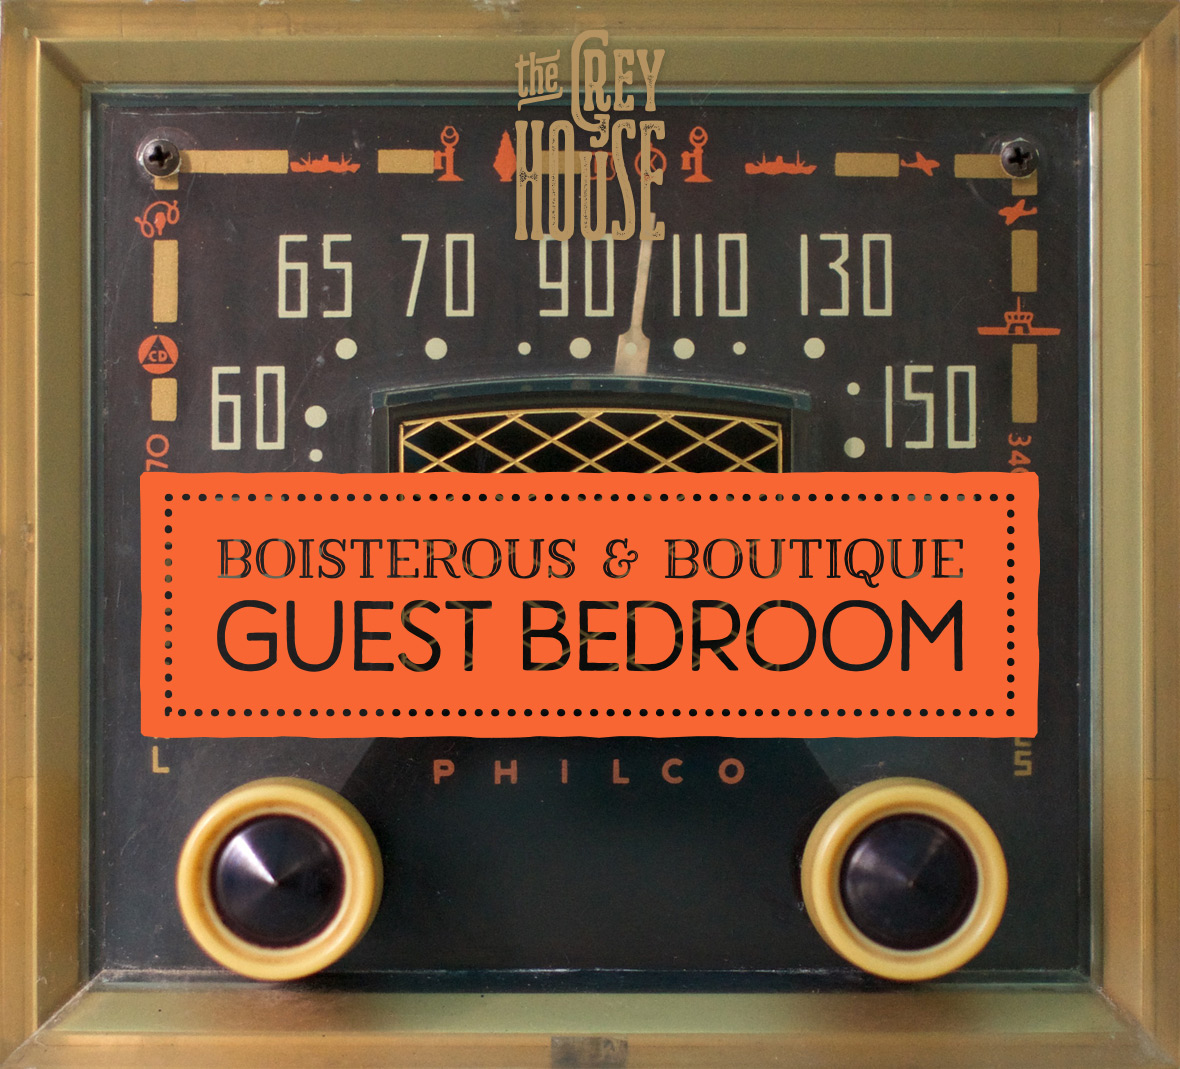 A vintage radio keeps guests entertained.